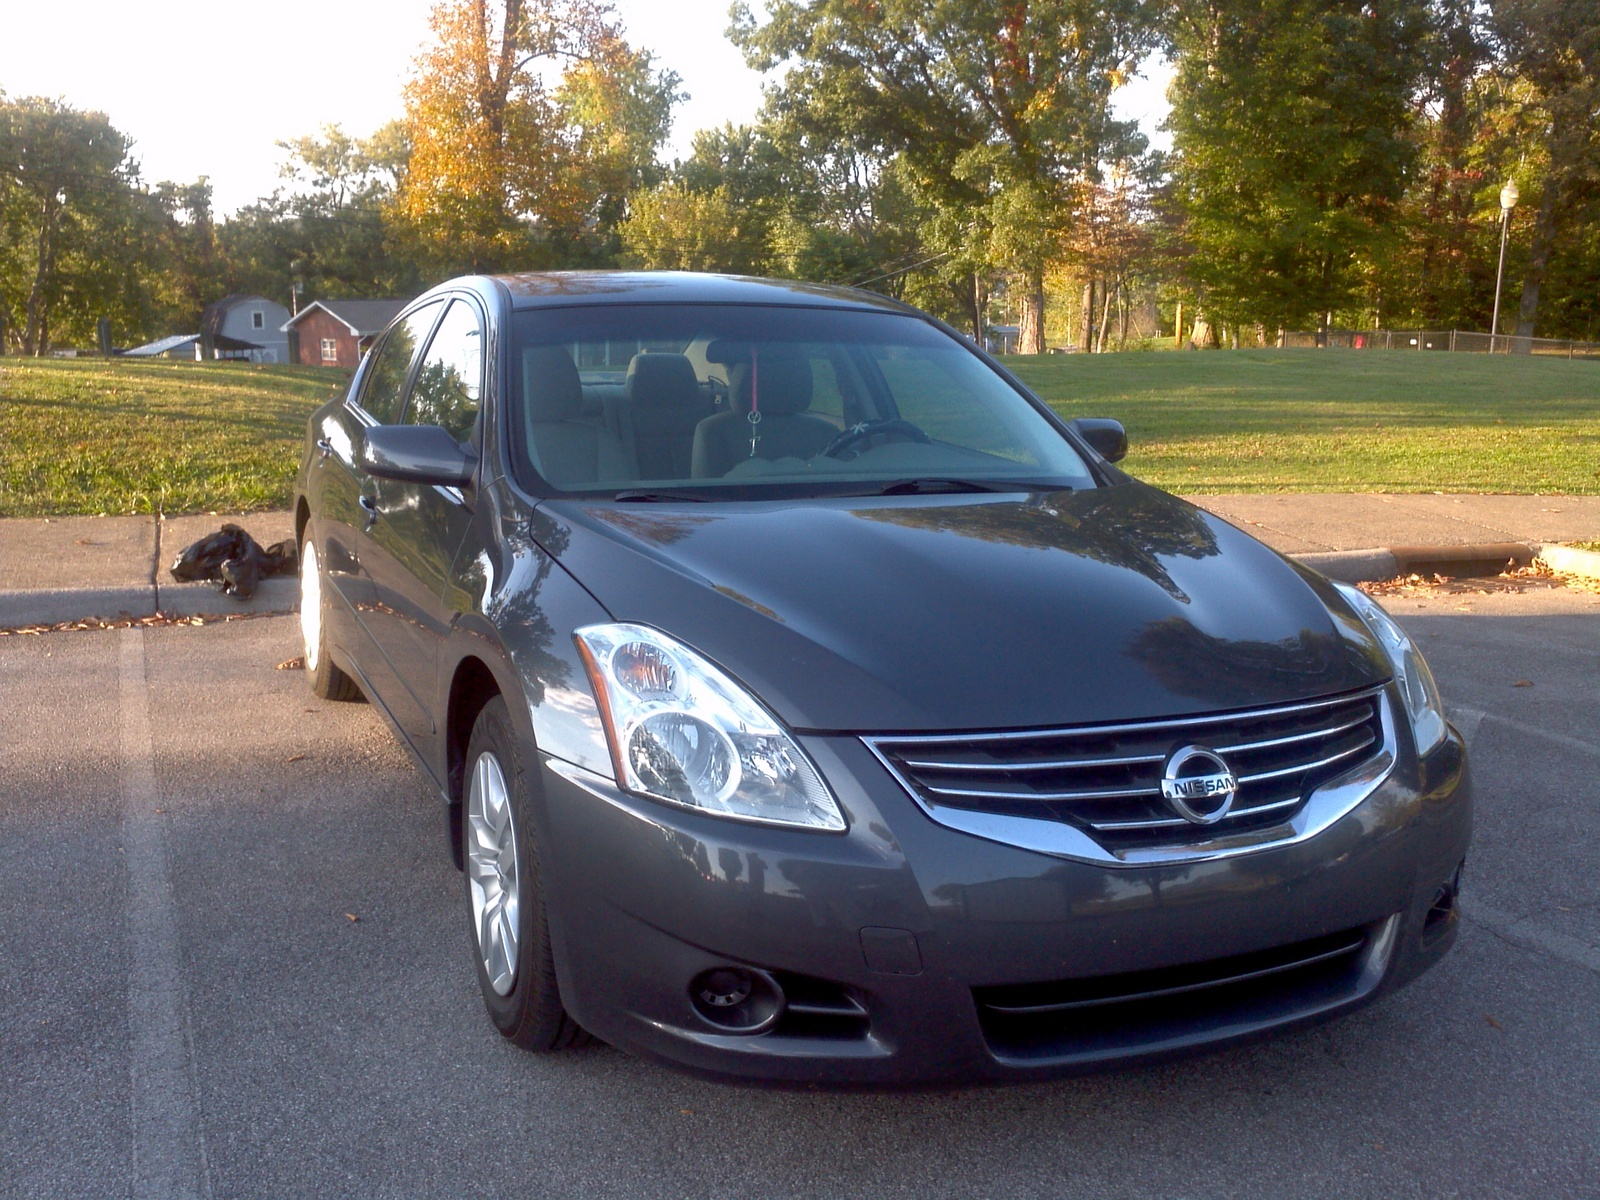 2011 Nissan Altima 2.5 S - Pictures - Picture of 2011 Nissan Altima ...